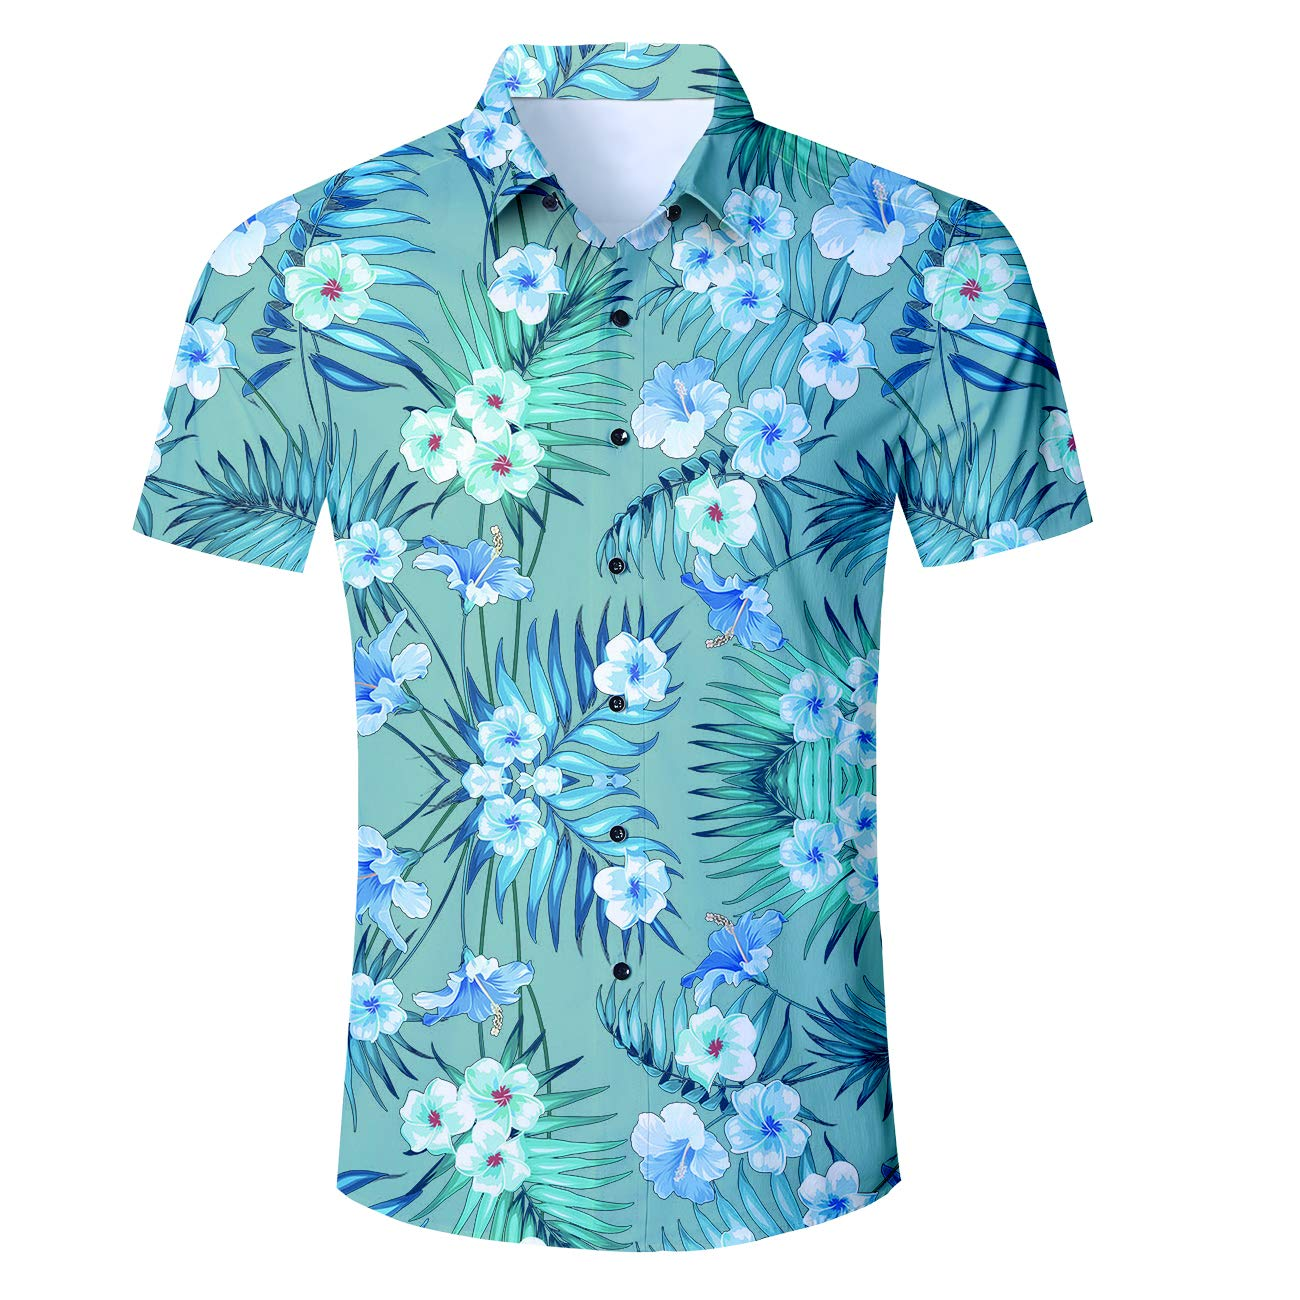 49db45cd Featured with all over 3D hawaii print pattern,button down closure, short  sleeves shirt. the trendy vibrant color and the hawaiian aloha ...